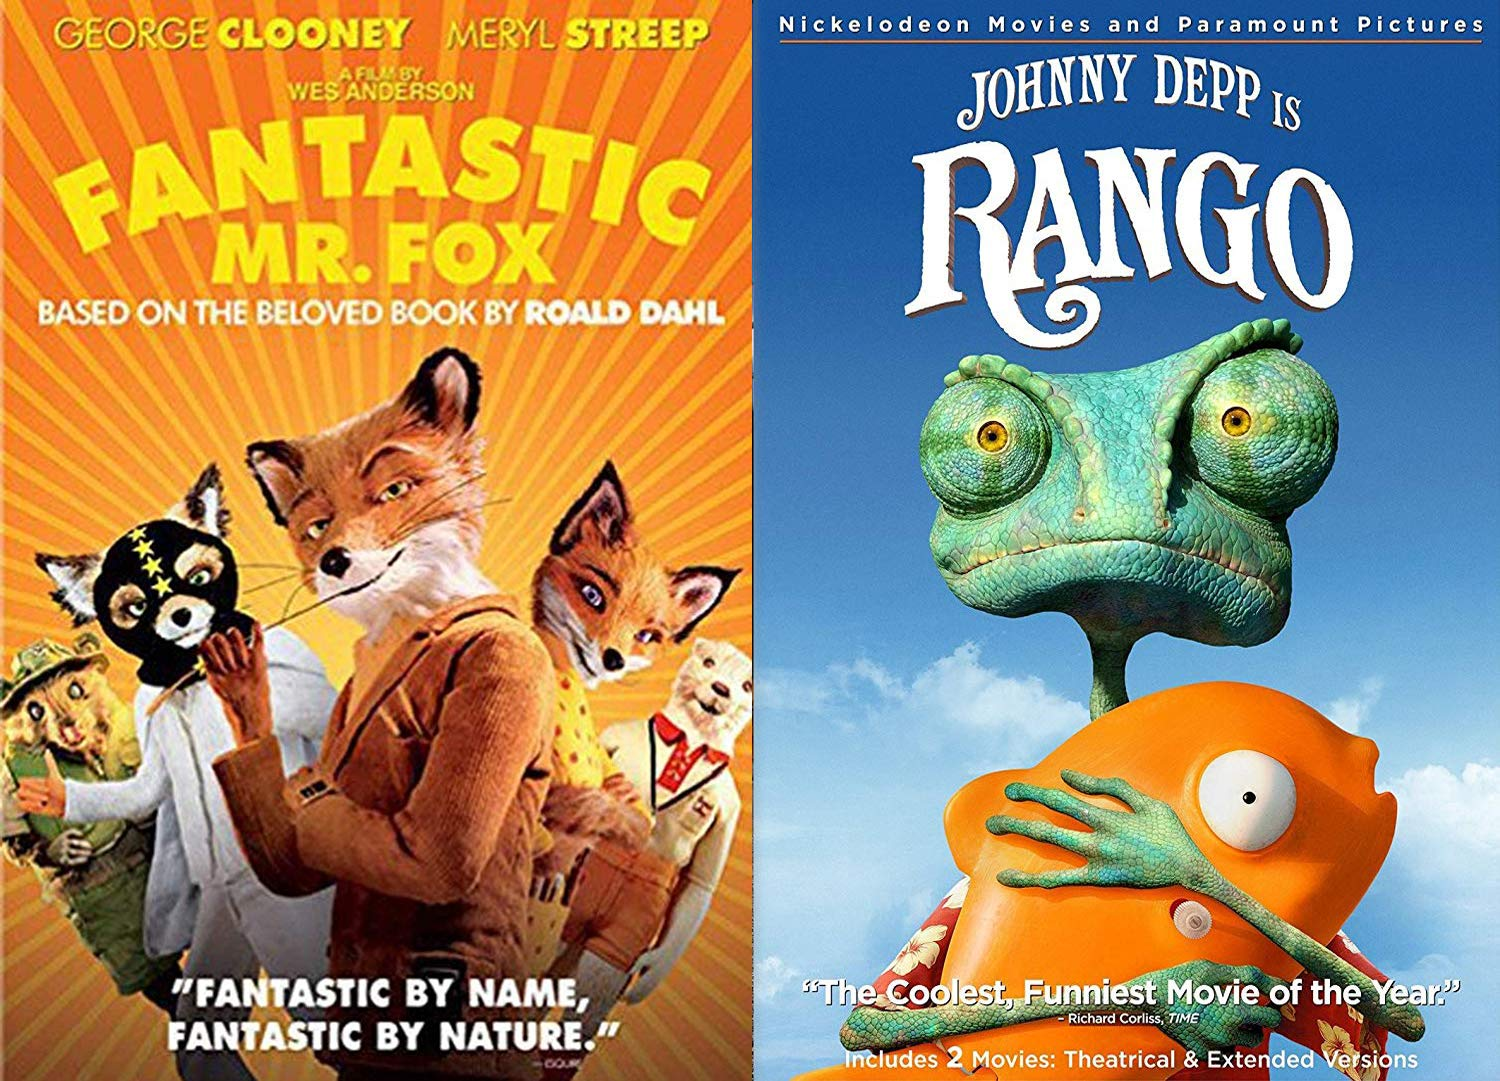 Amazon Com Chameleon Fox Animated Double Feature Rango The Sly Fantastic Mr Fox Wes Anderson Dvd 2 Pack Fun Film Set Johnny Depp George Clooney Wes Anderson Movies Tv